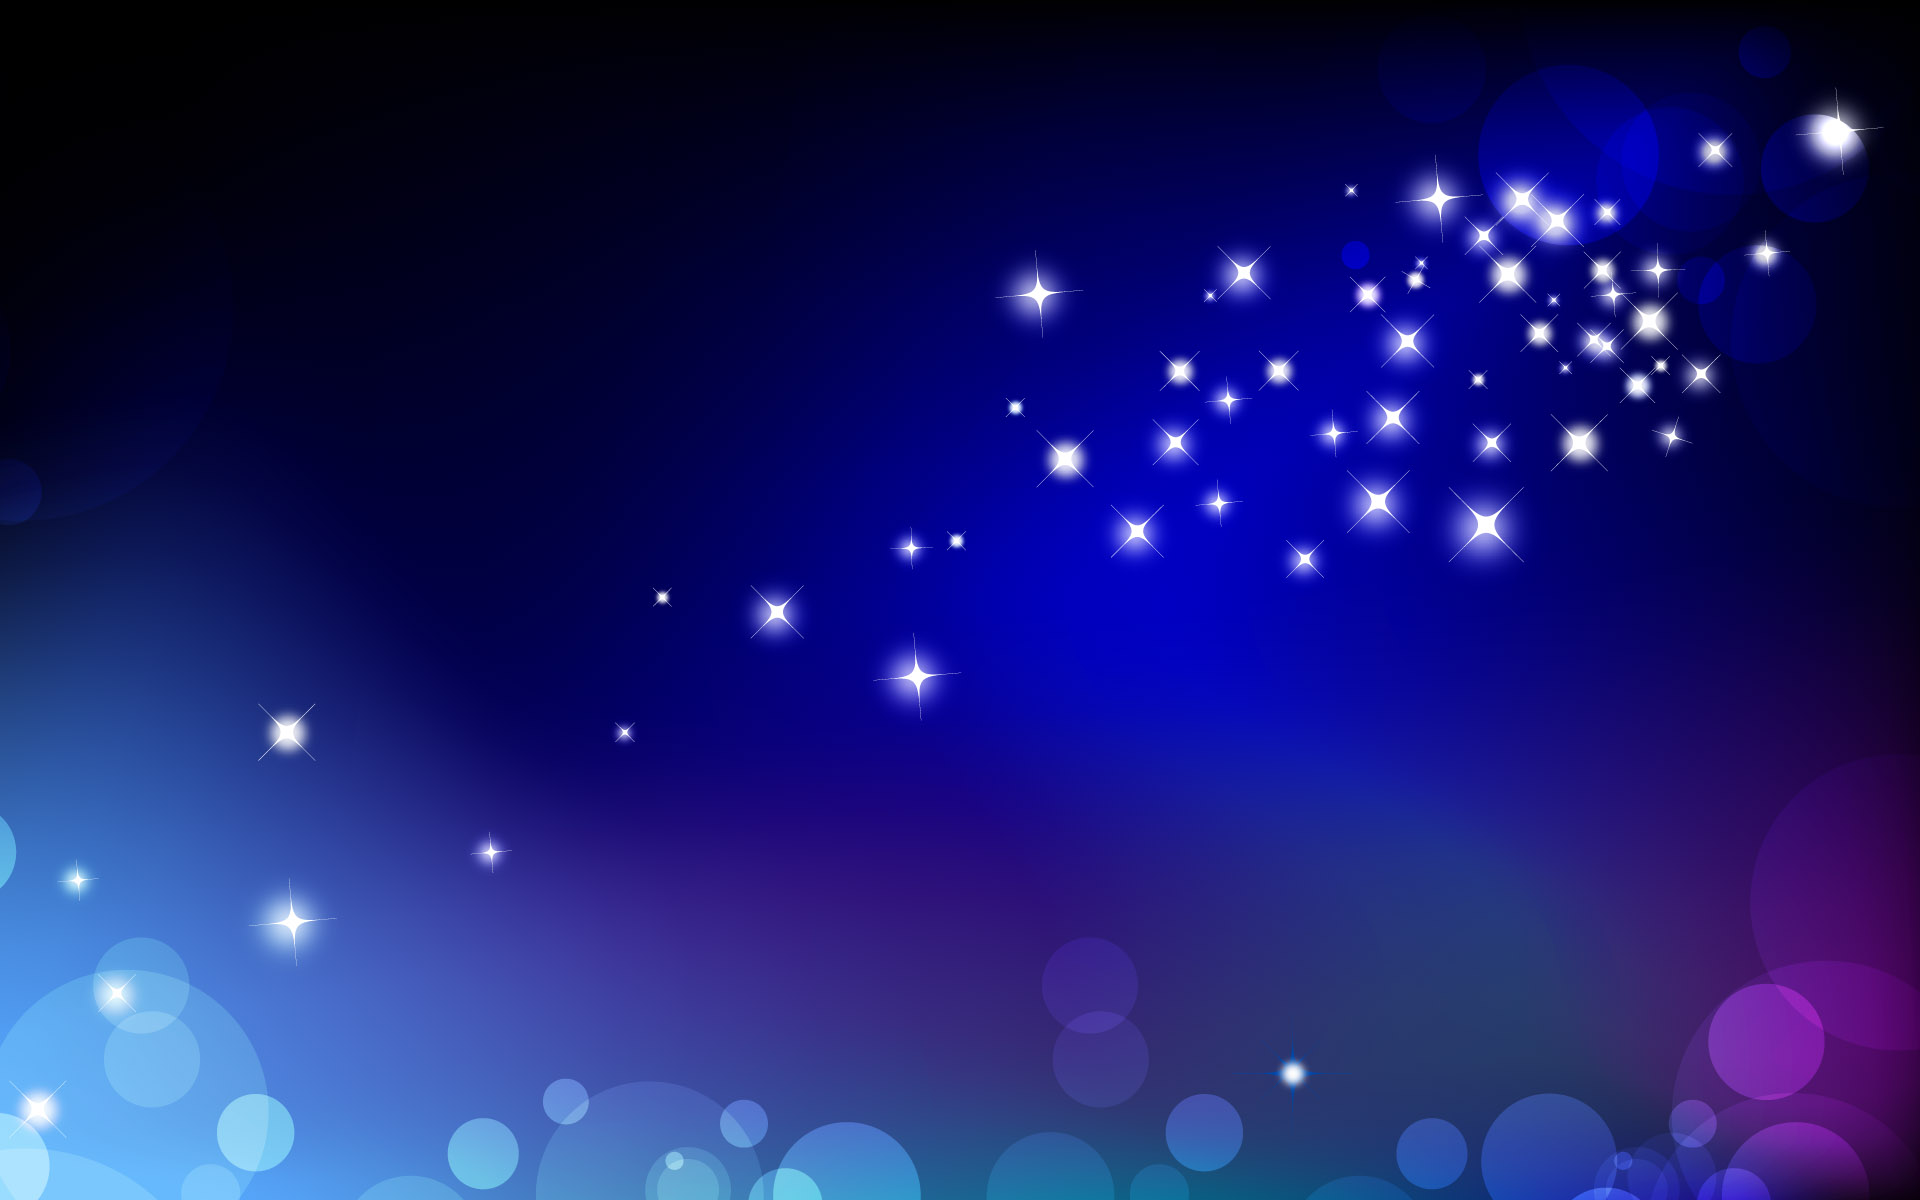 High-resolution color background 15679